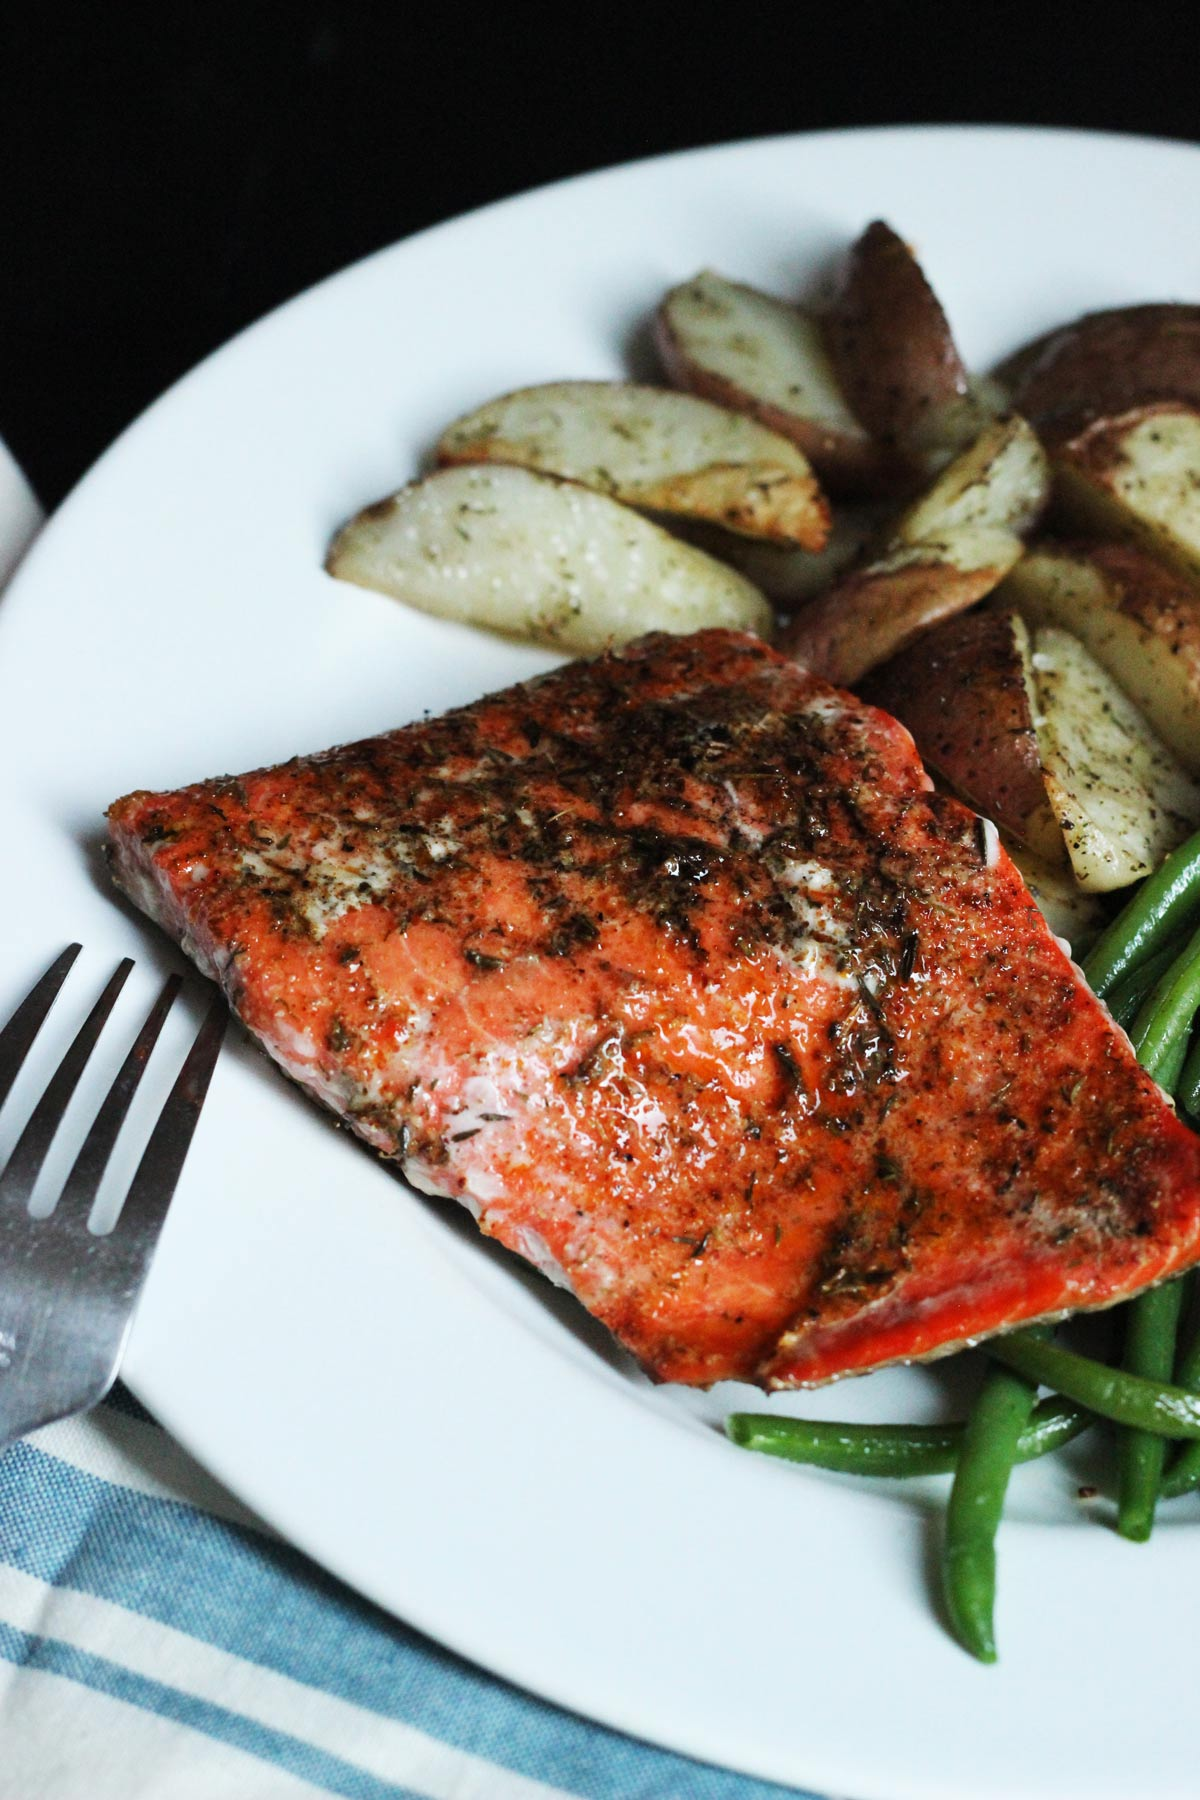 grilled salmon on dinner plate